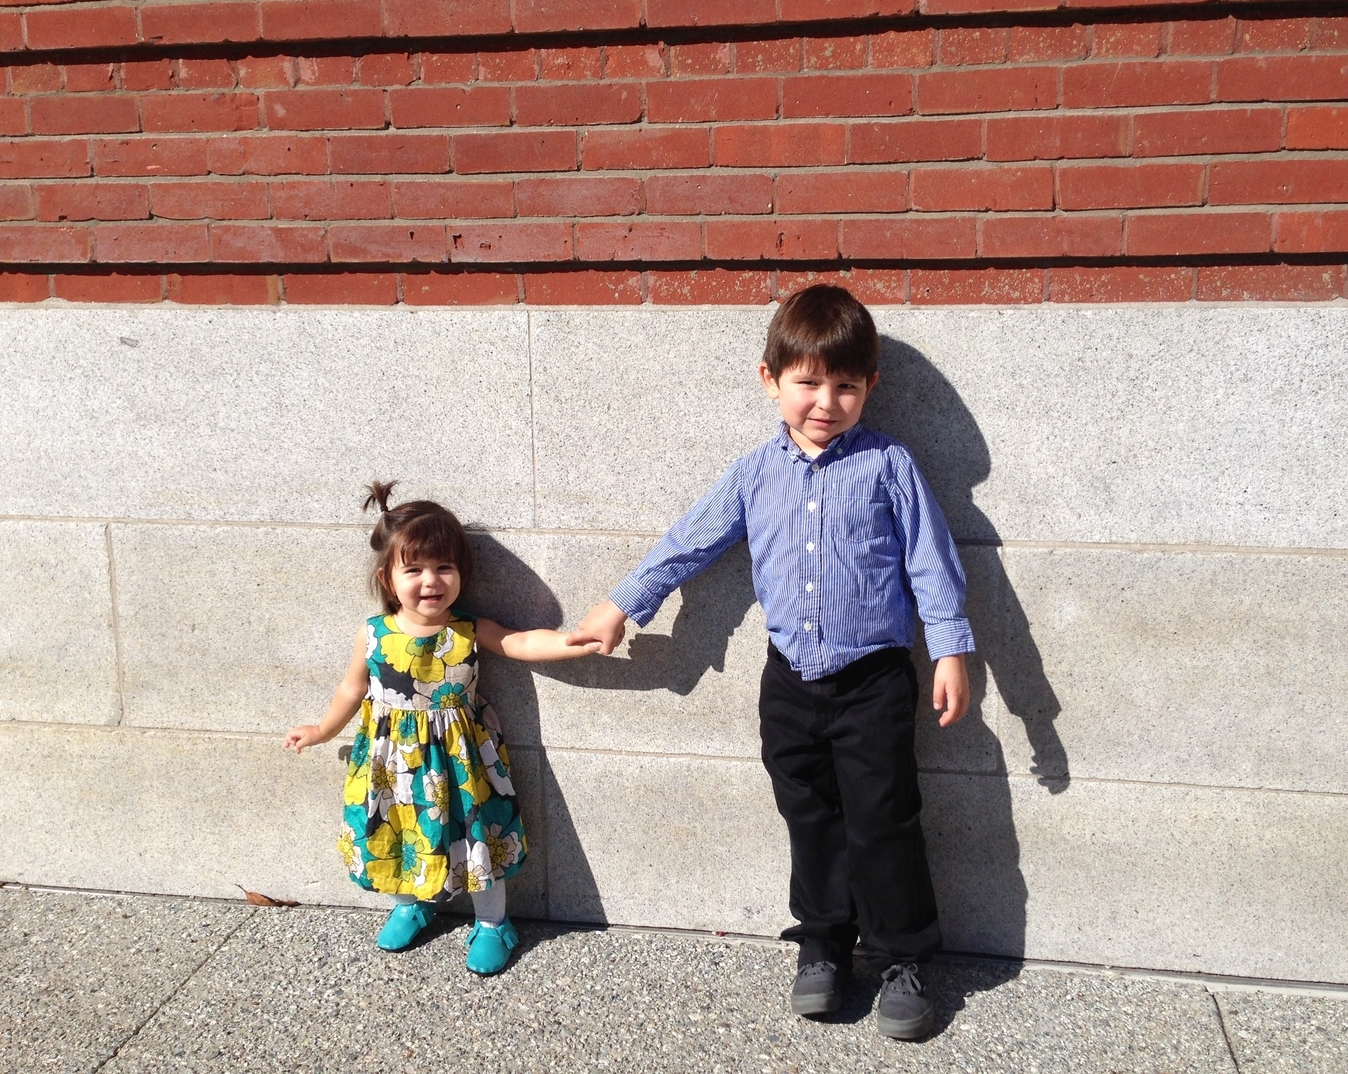 An iphone picture I took of them right after church, I couldn't resist the temptation;)